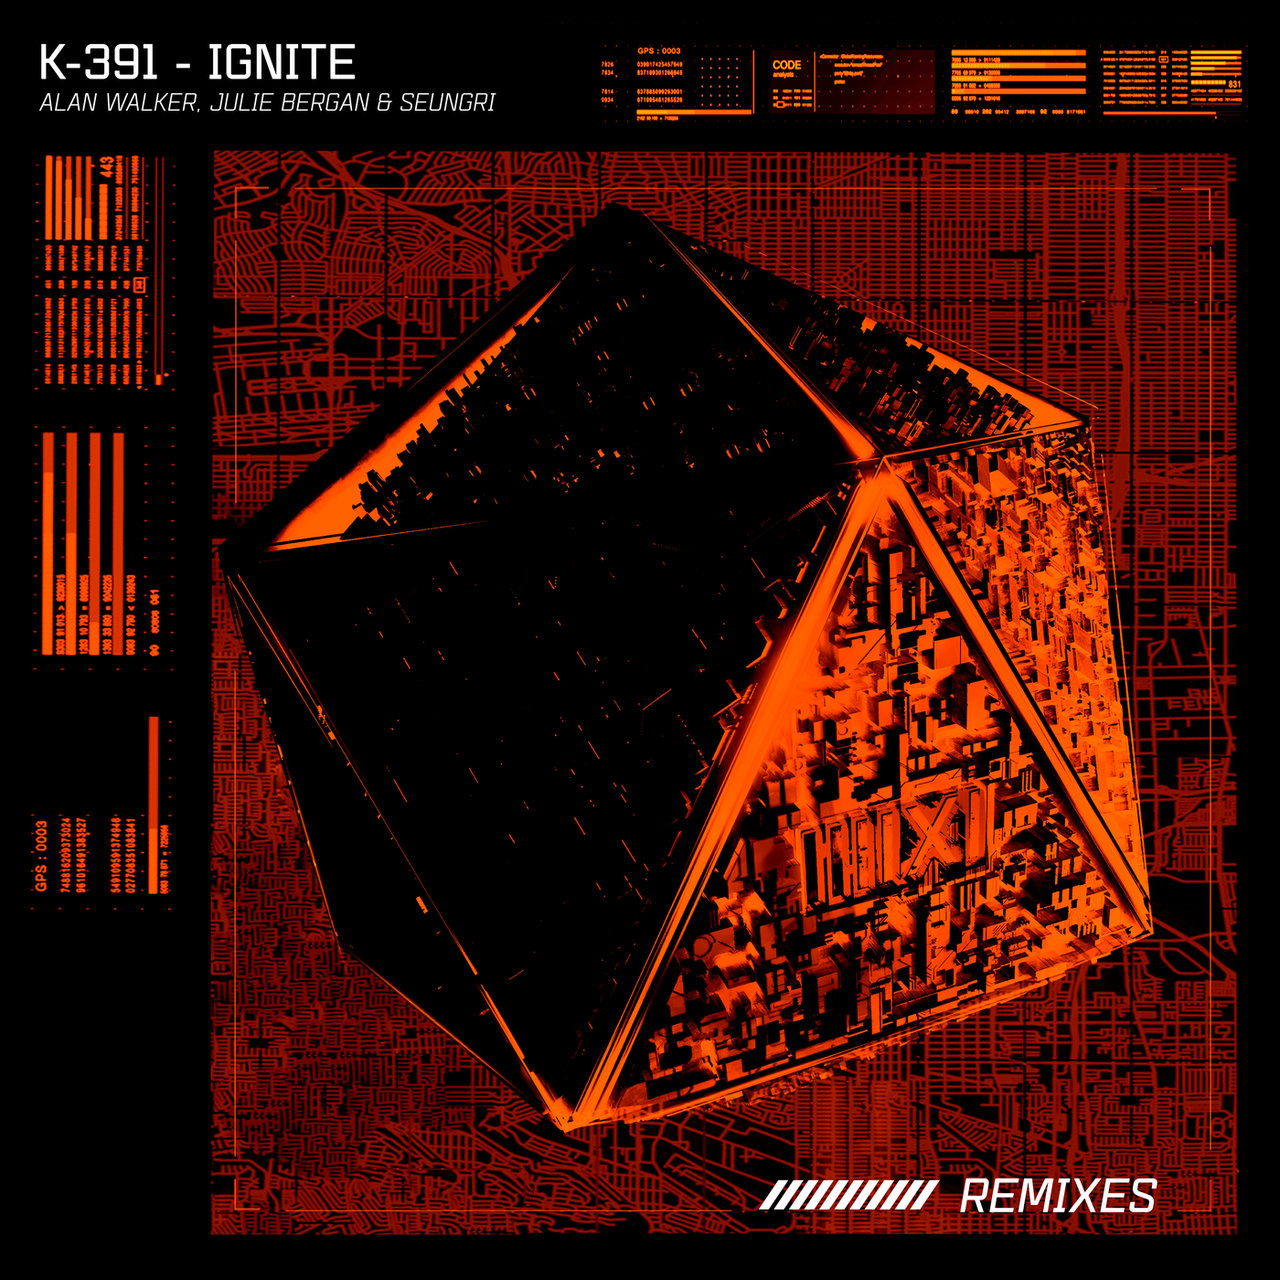 Ignite (Remixes)